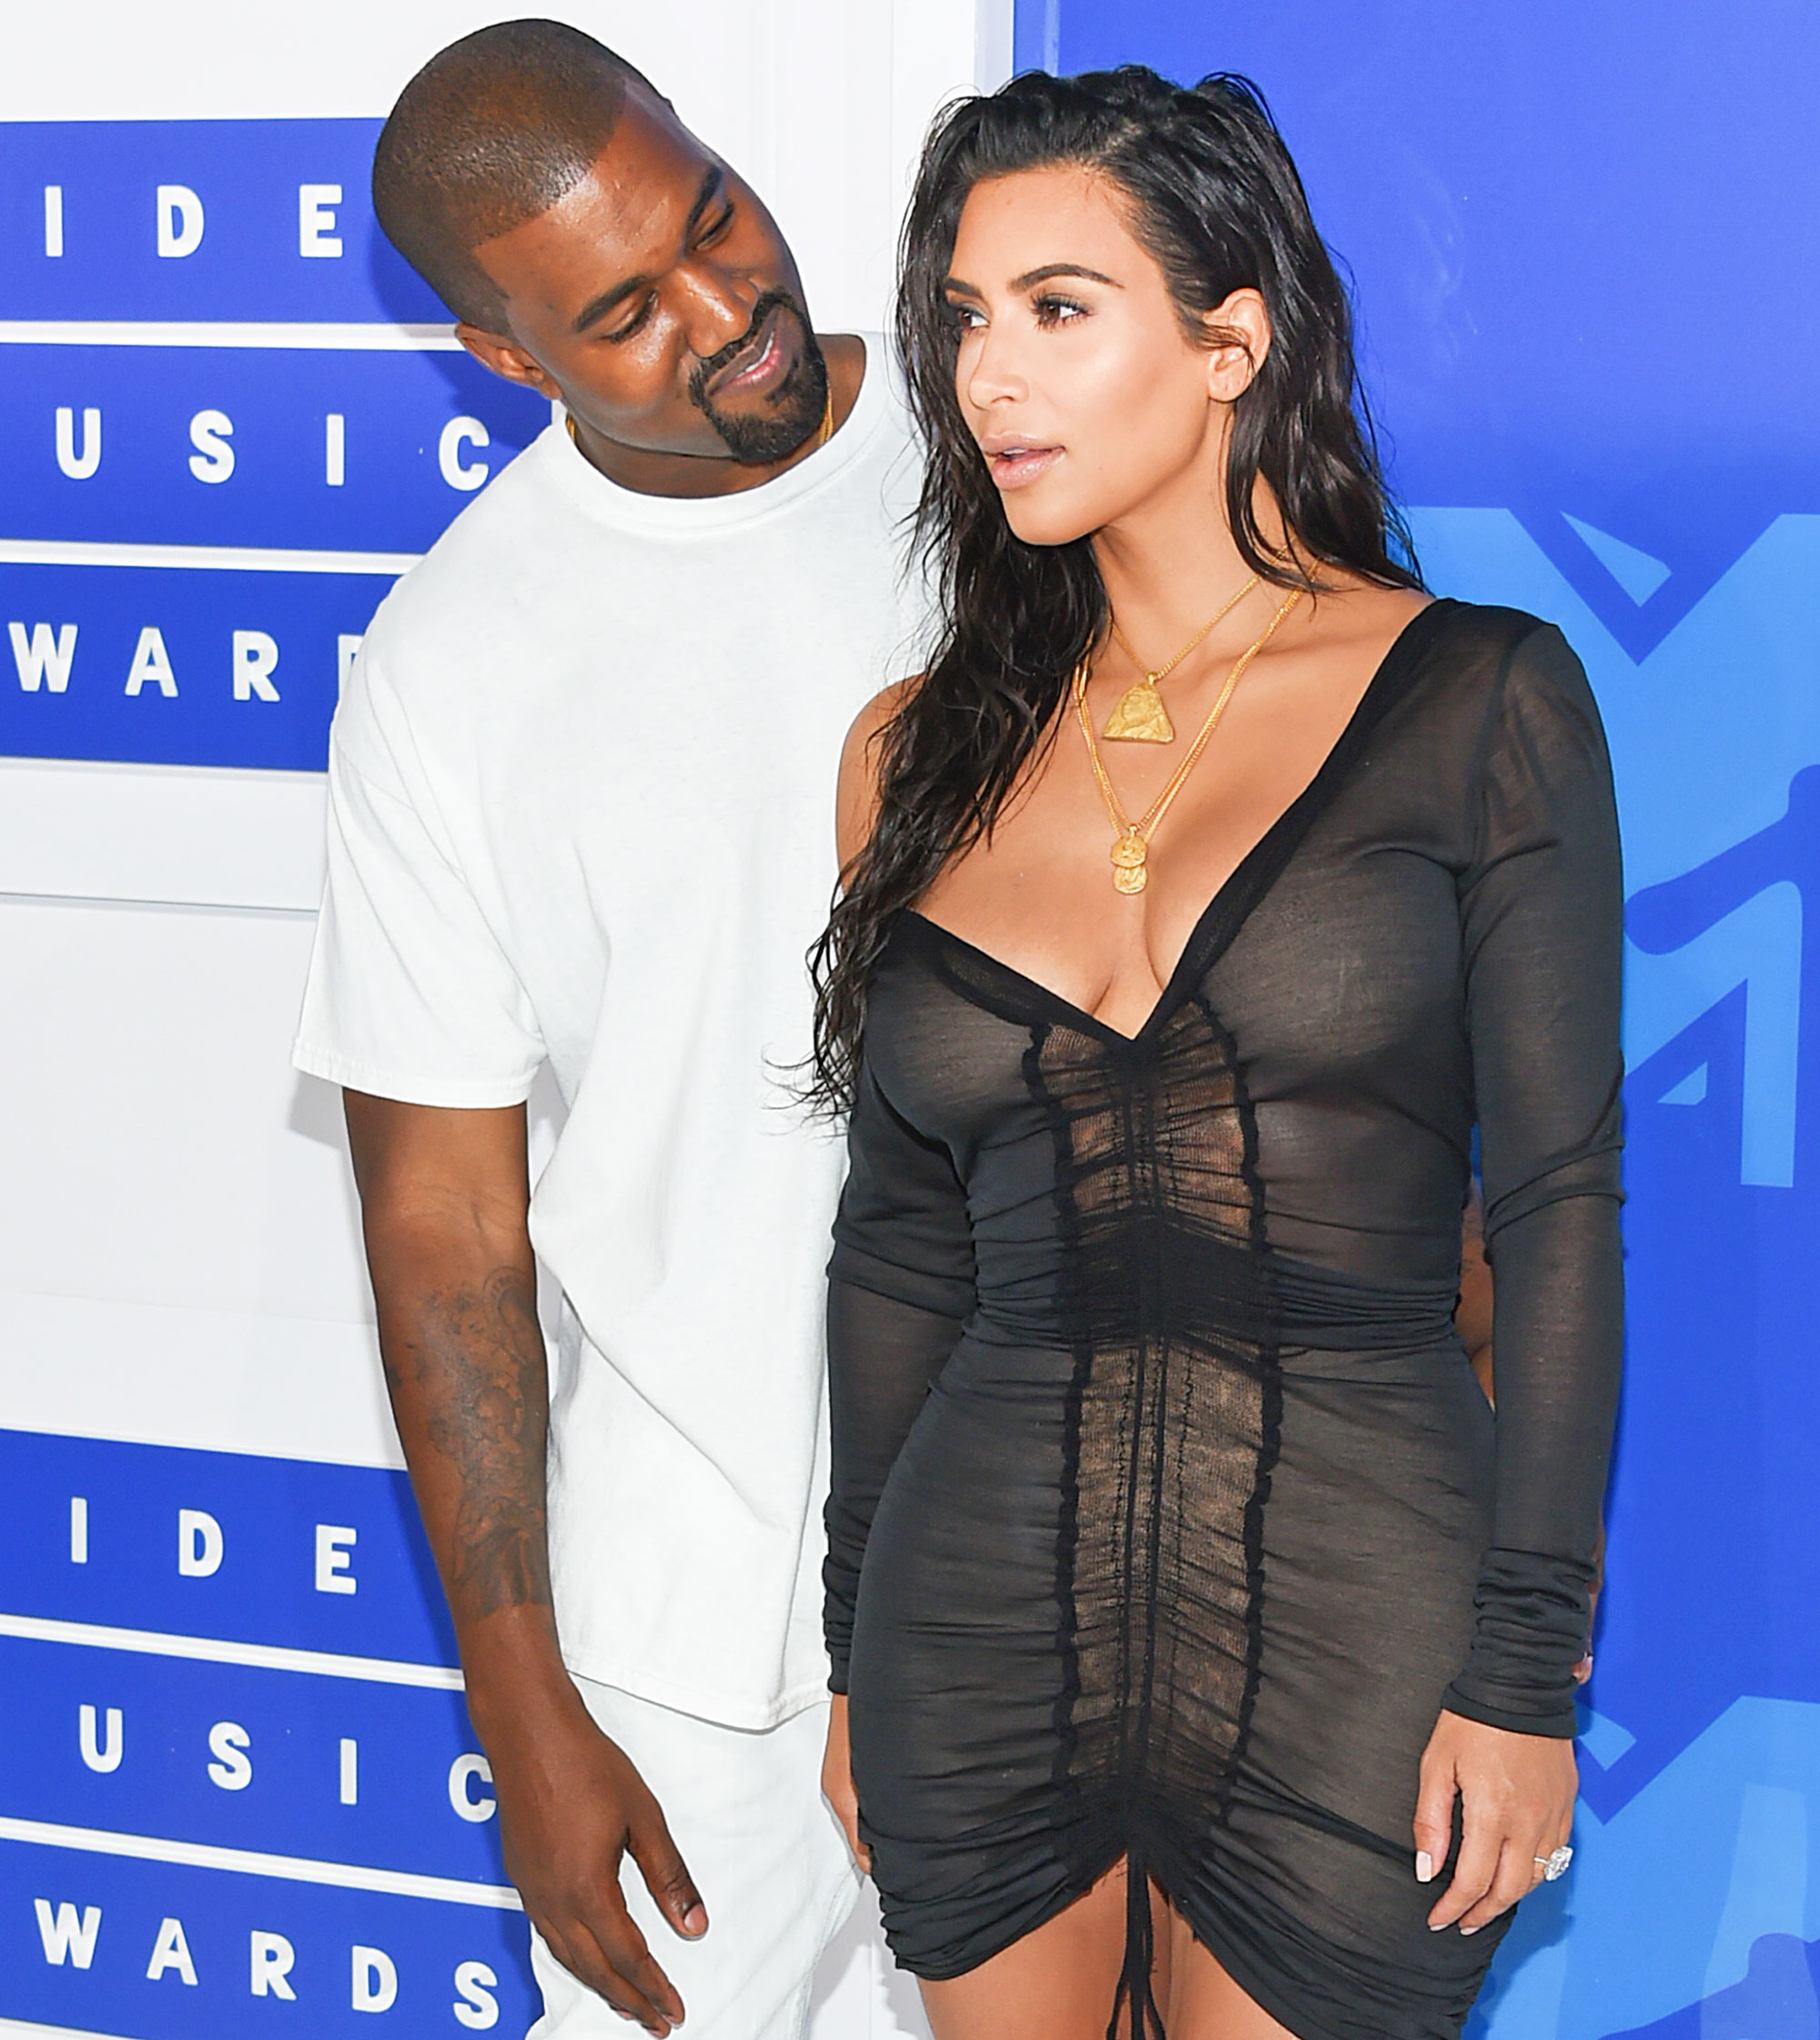 Kanye West Kim Kardashian stay with him together breakup break up rumors